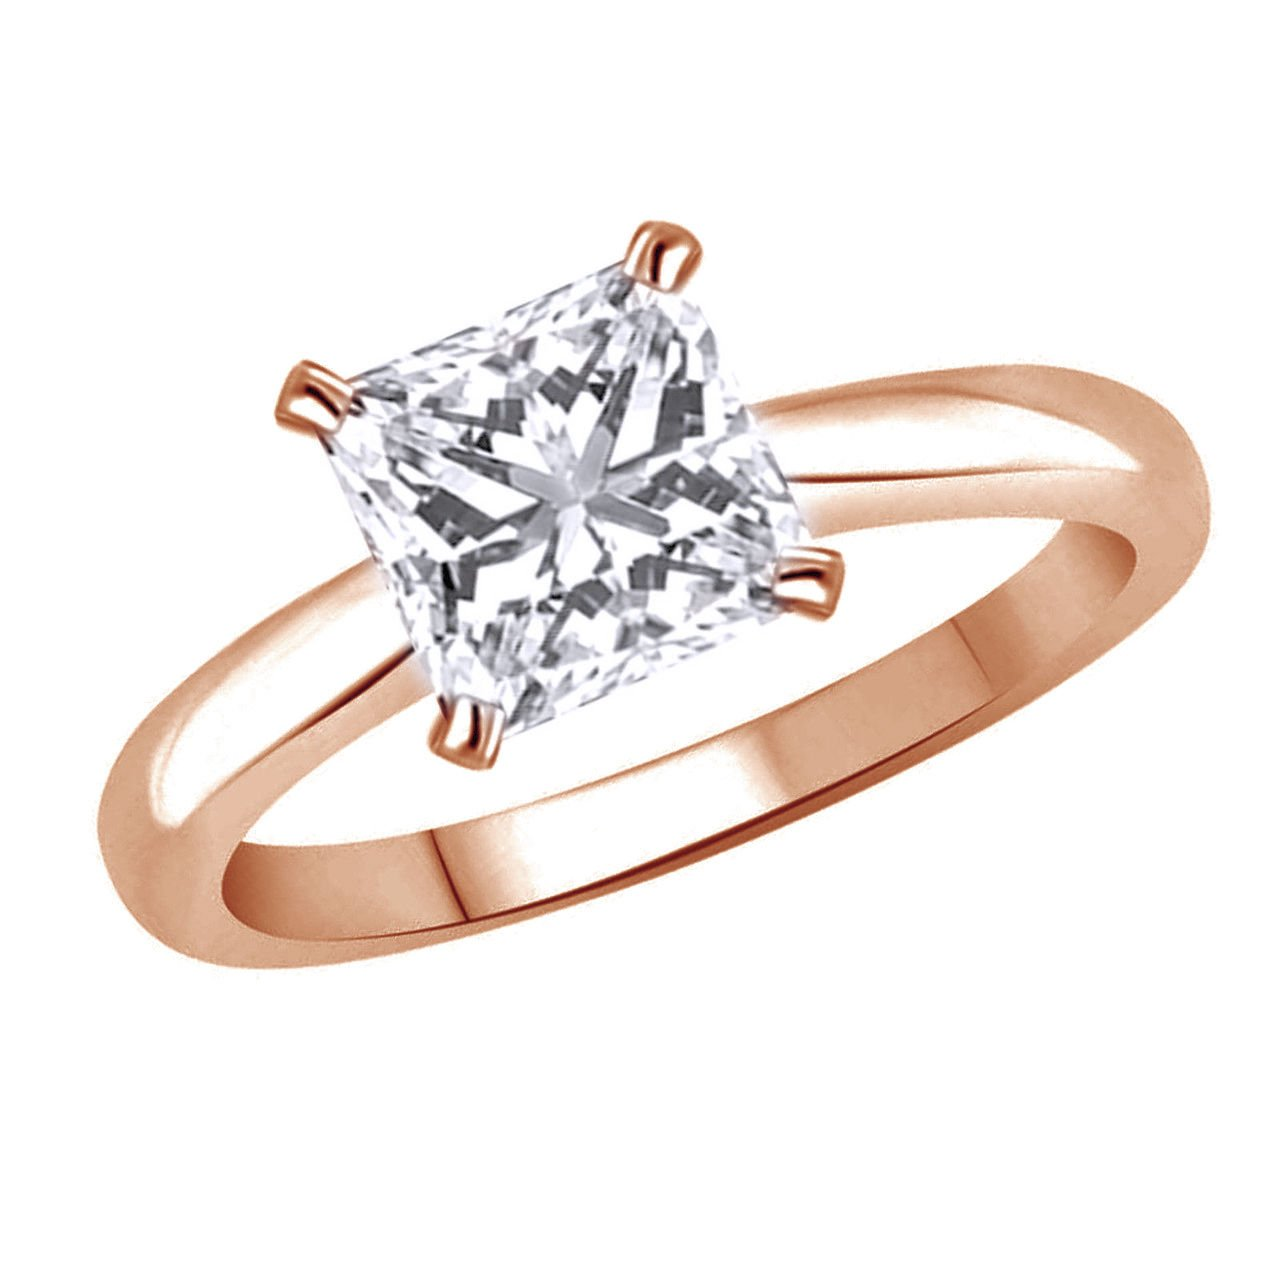 omegajewellery 10K Solid Gold Princess Simulated Diamond Solitaire Engagement Ring (1.50 Ct)